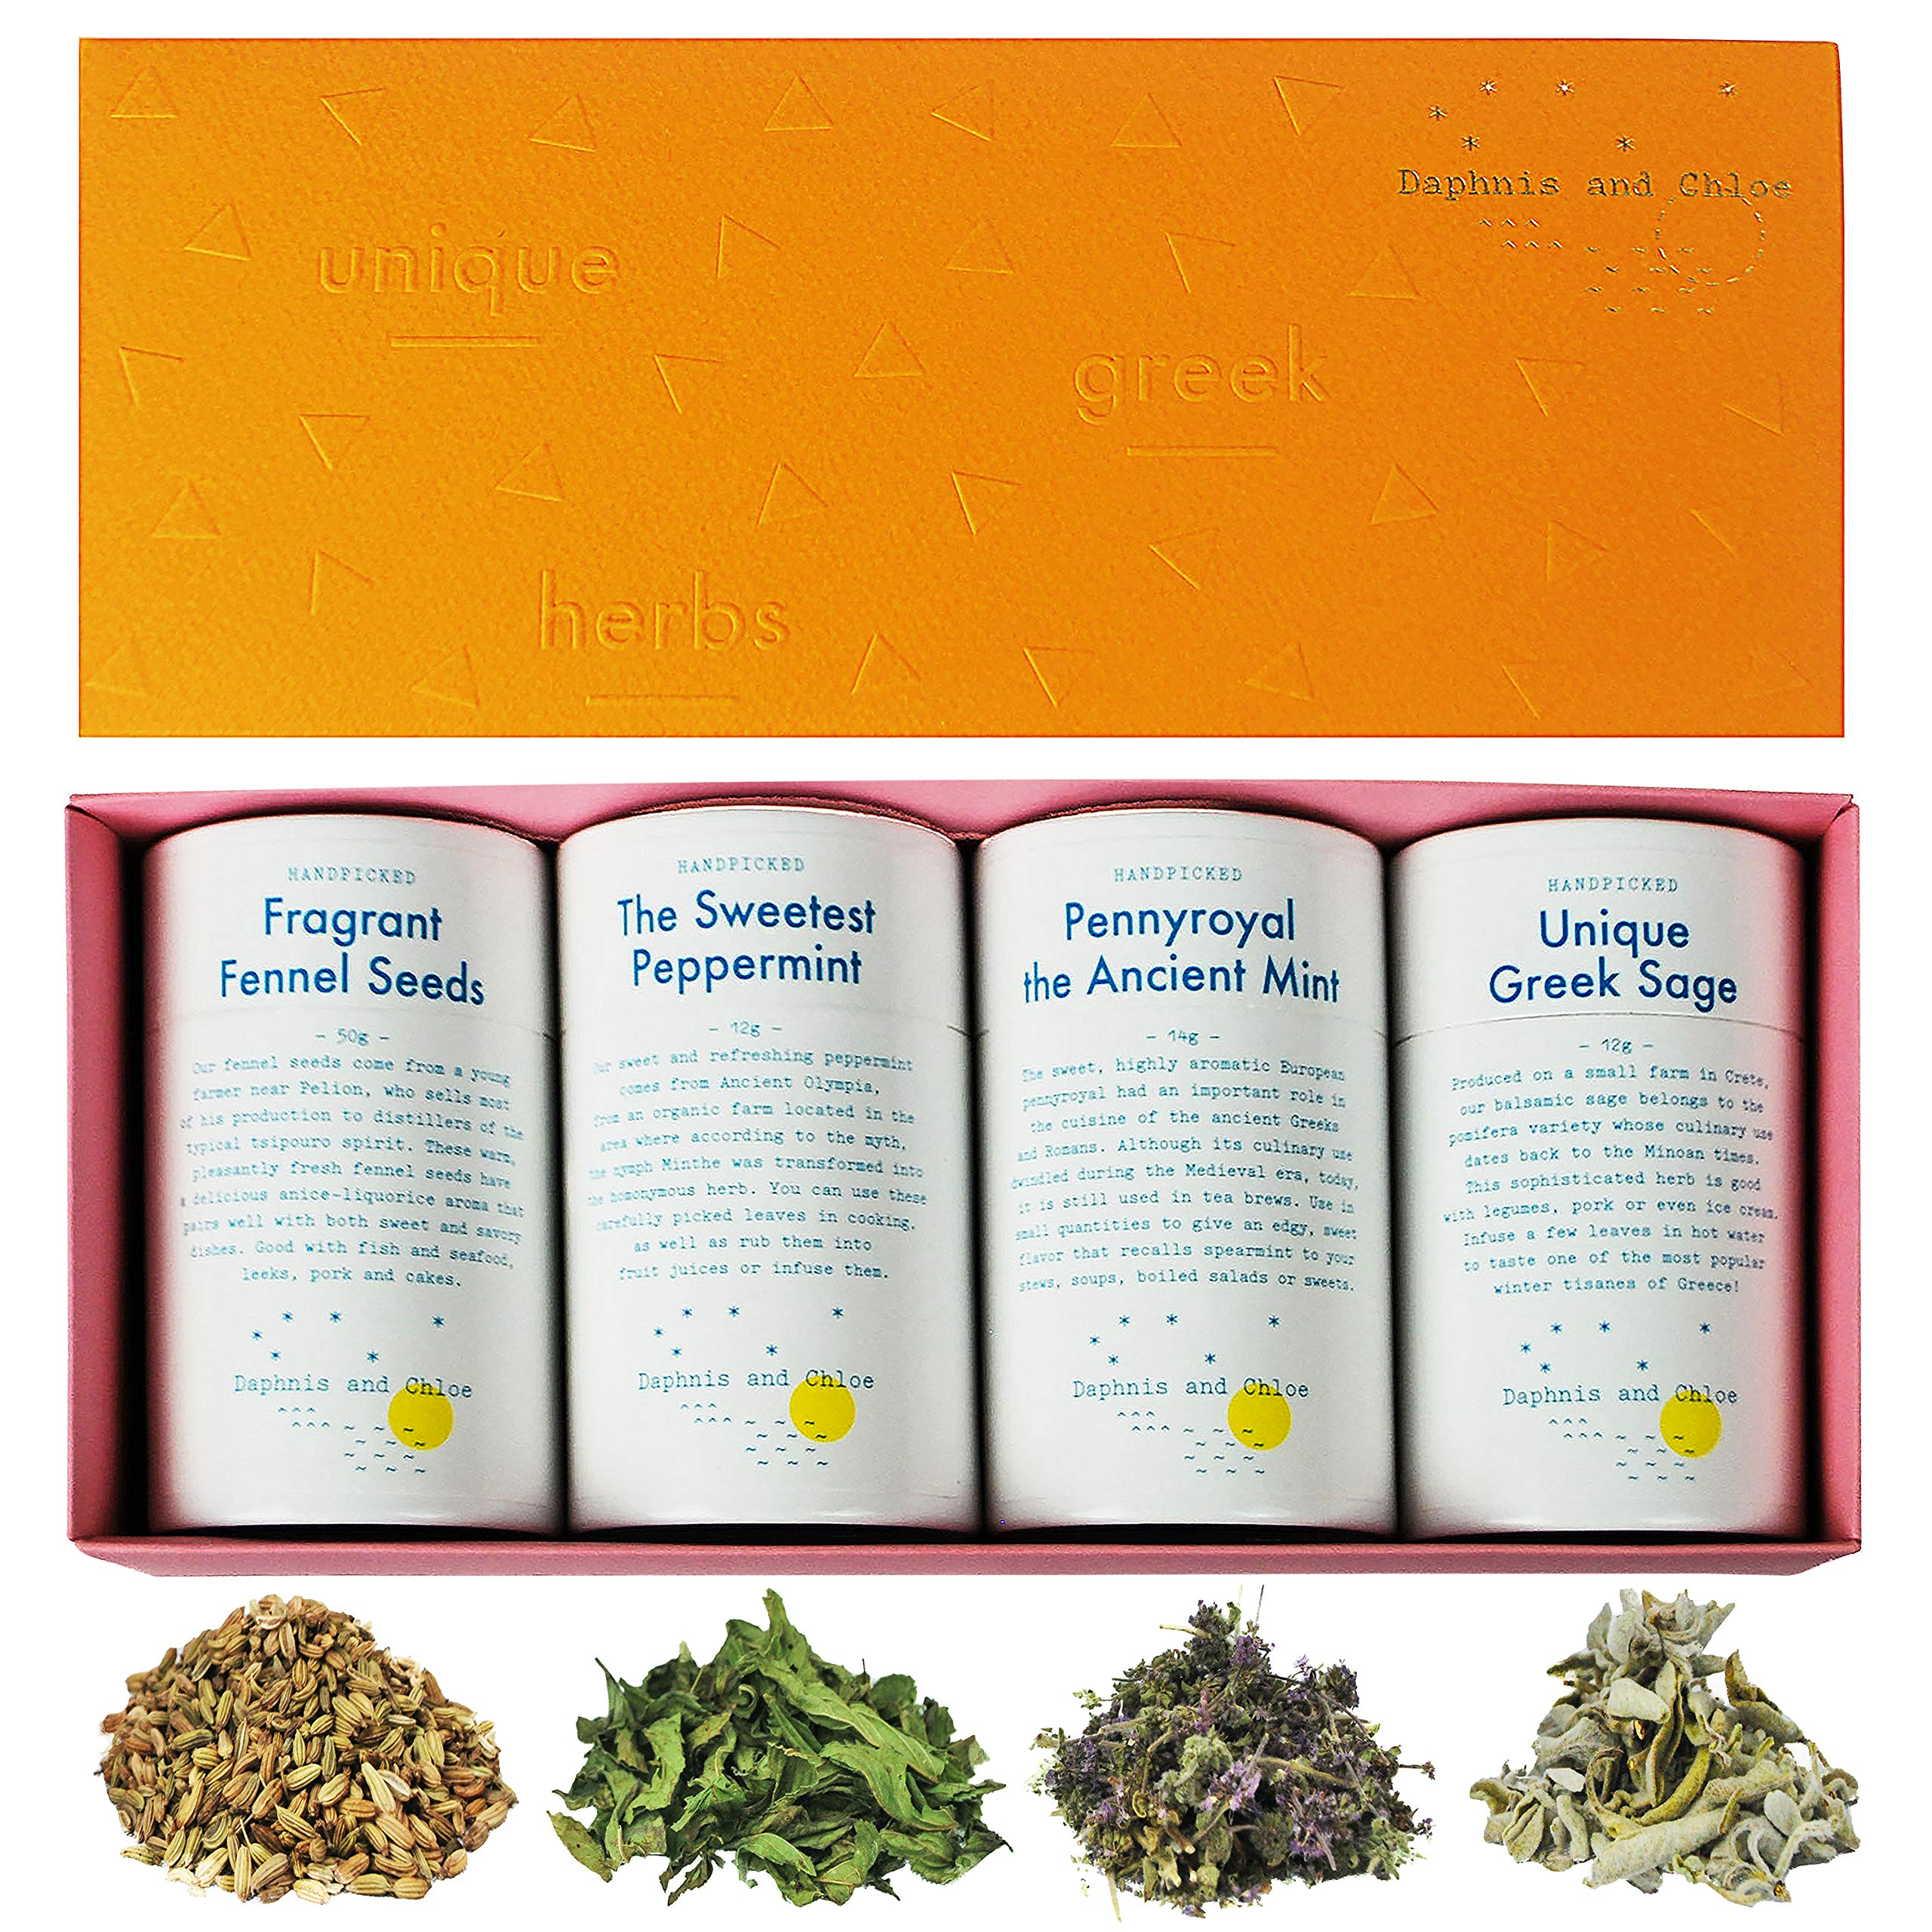 Herbal Tea Gift Box | Loose-Leaf Tea Set with 4 Flavors in Gift Box | Caffeine Free Tea | Handpicked and Sustainably Sourced in Greece